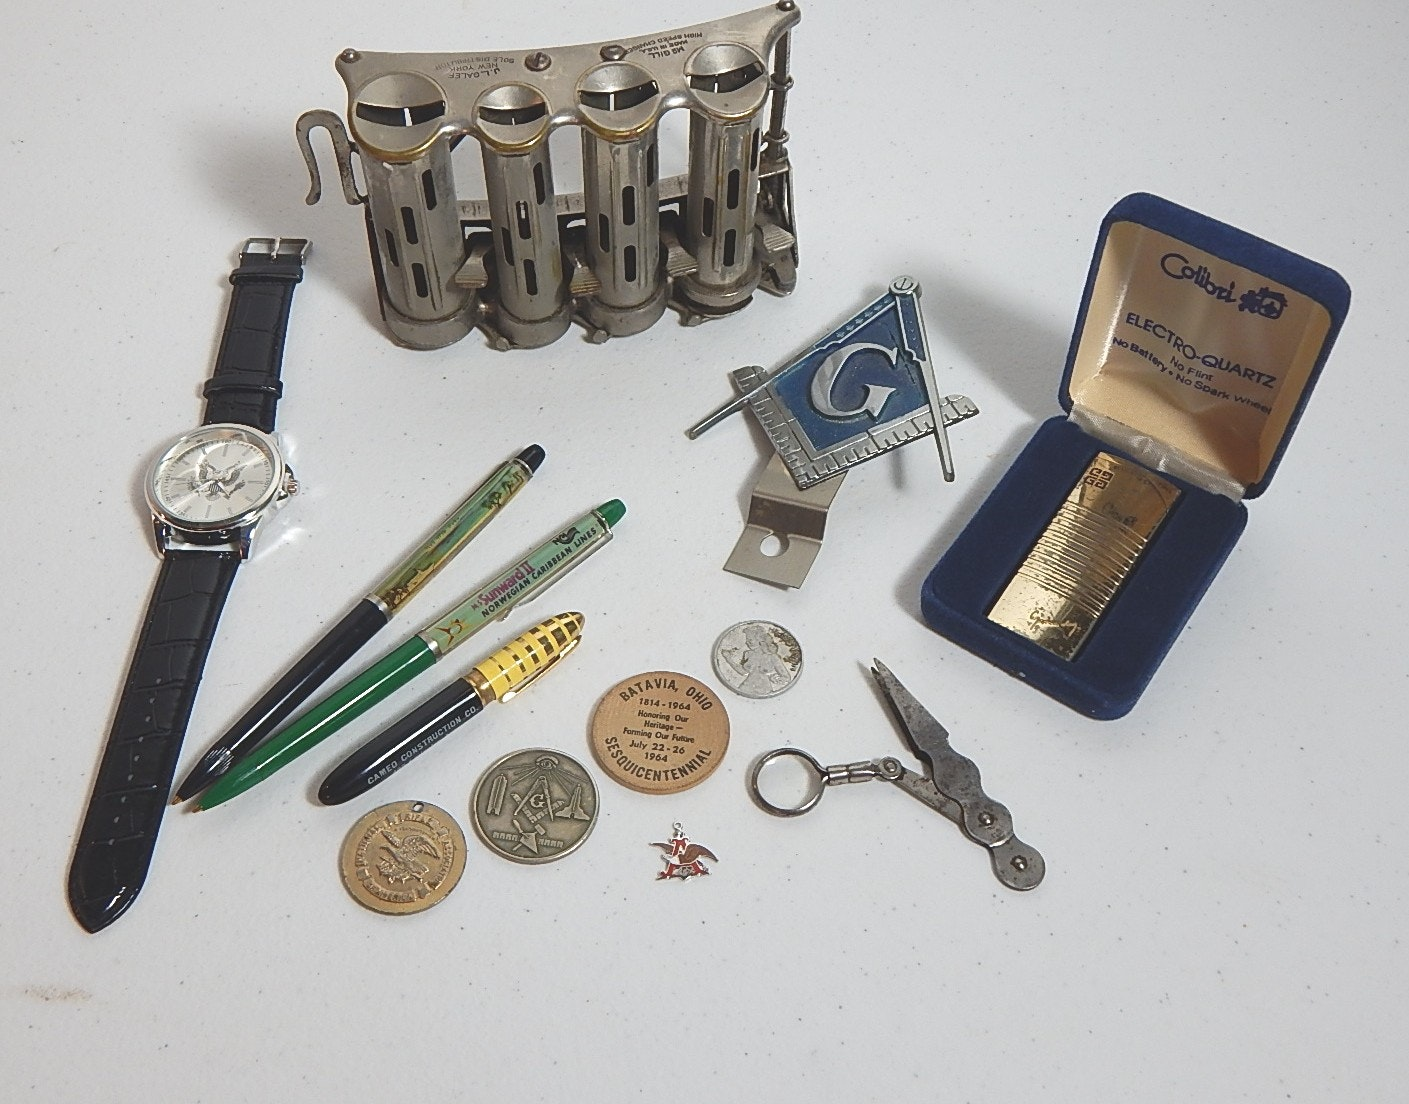 Coin Dispenser, Pens, Masonic, and Other Collectibles